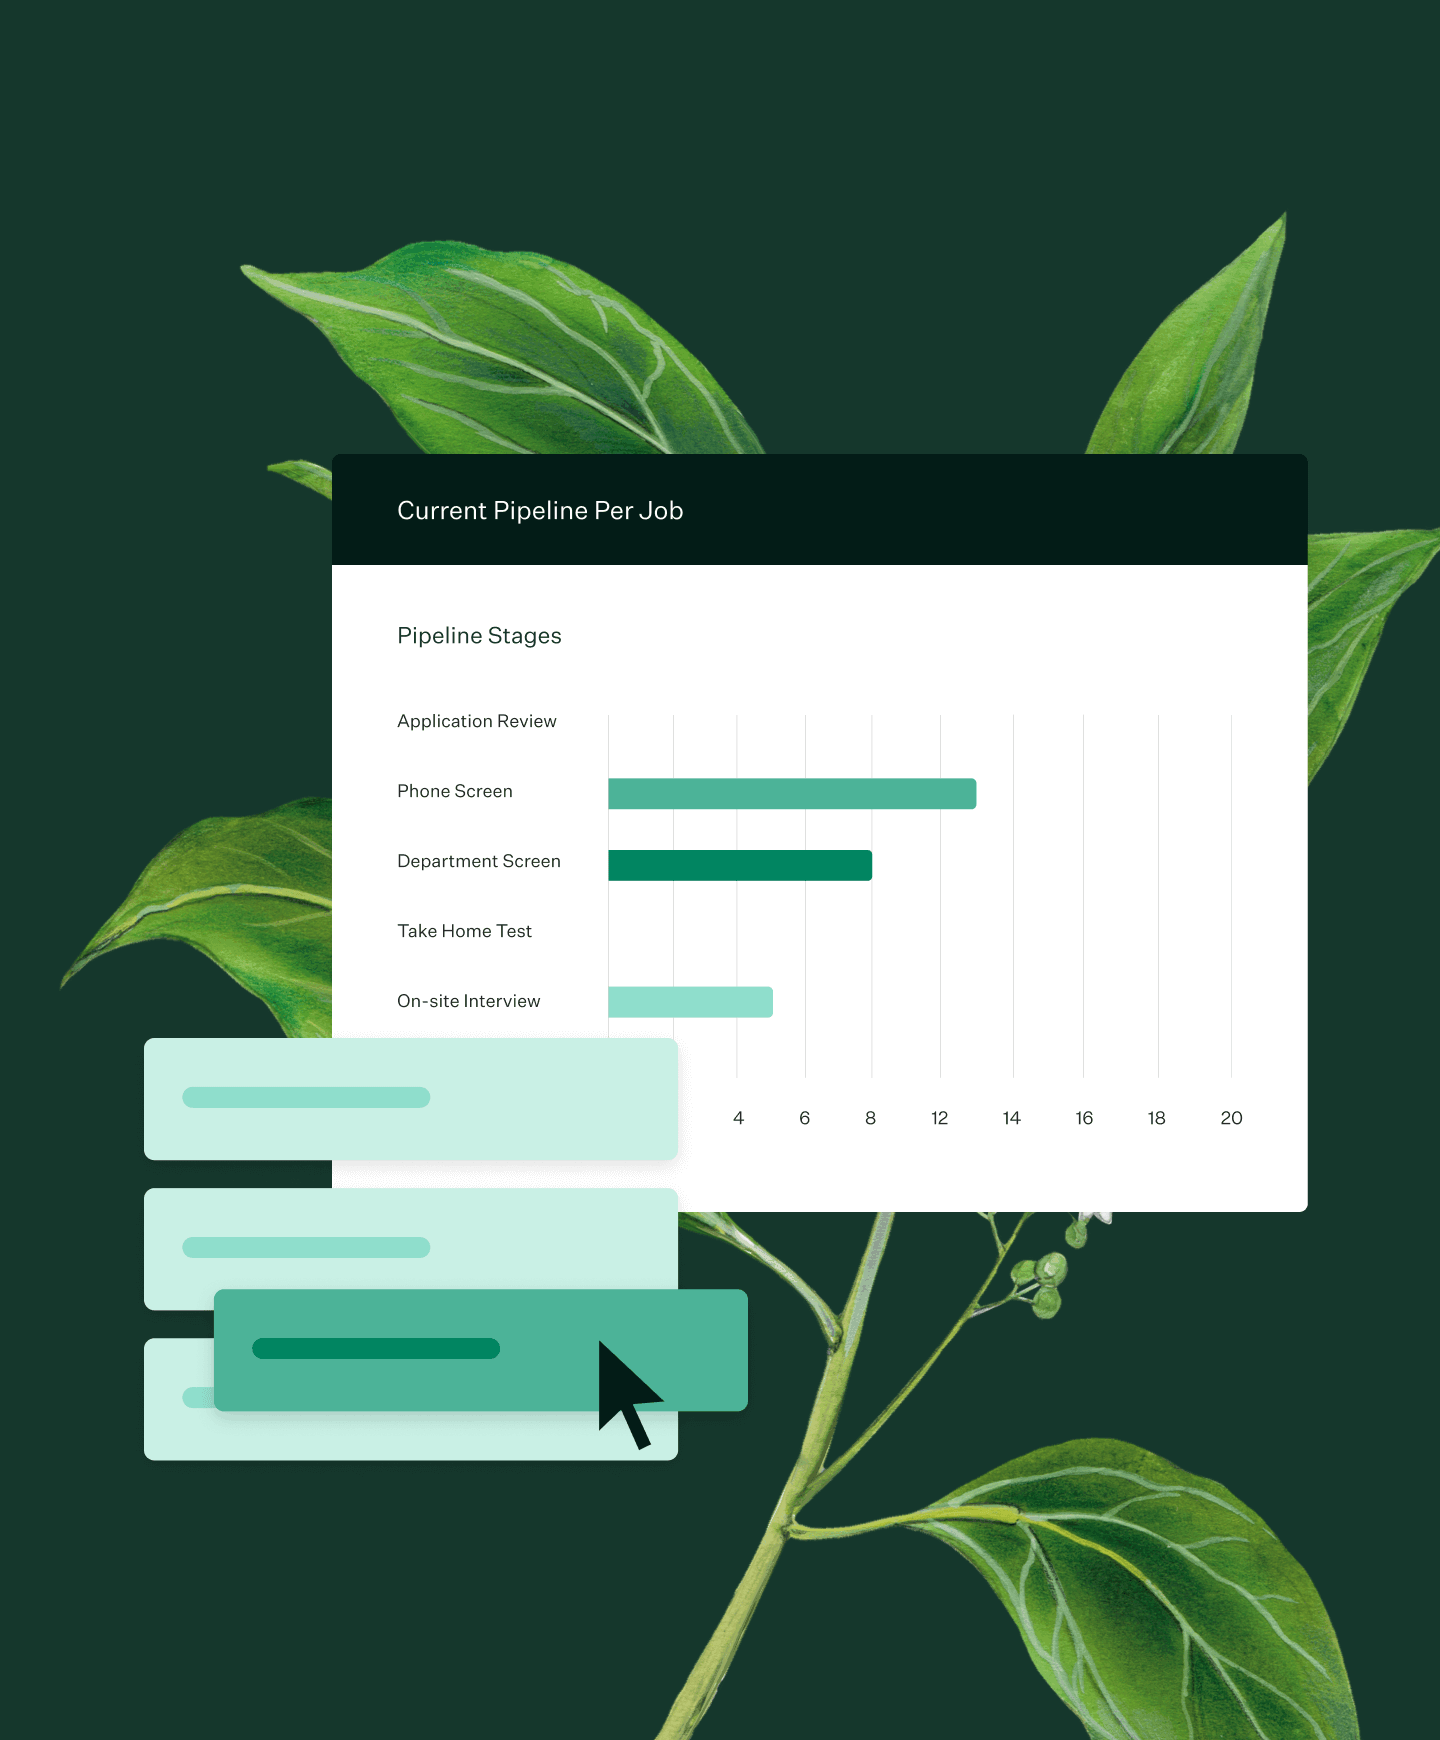 Images of Greenhouse Recruiting reporting features and a plant illustration